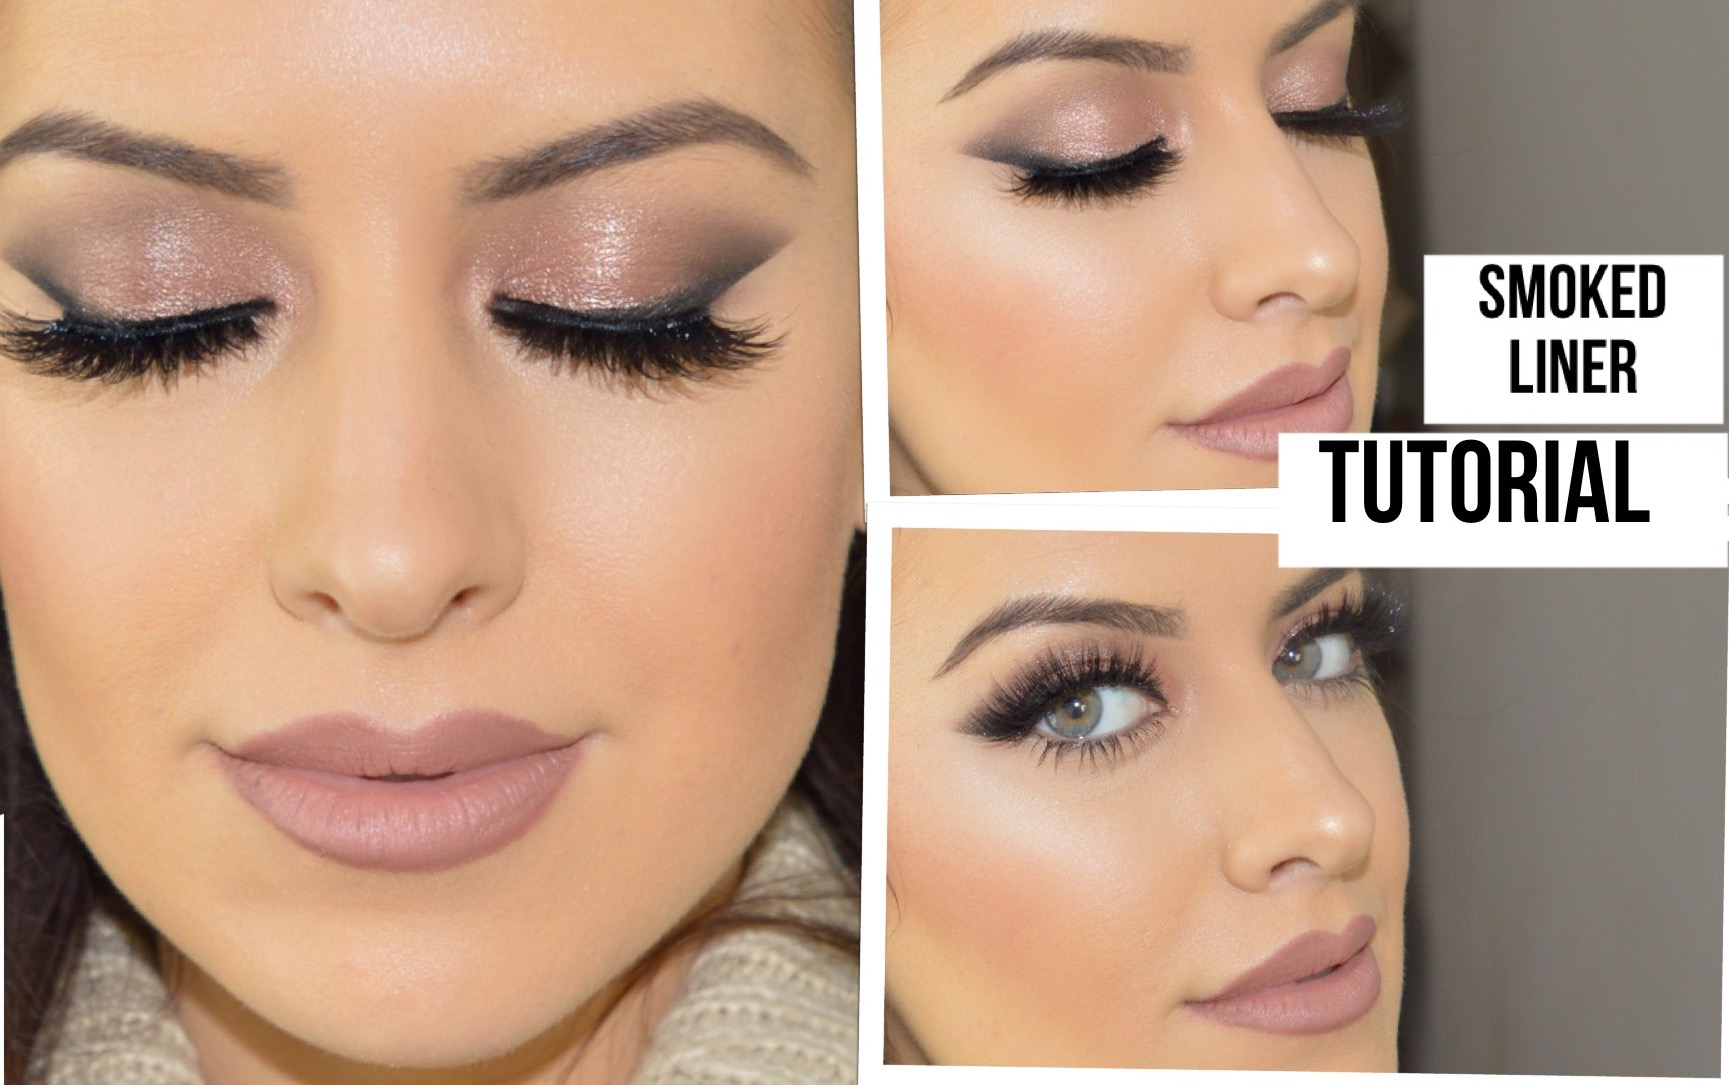 Kylie Jenner and Hrush winged Smokey shadow liner using TAPE!